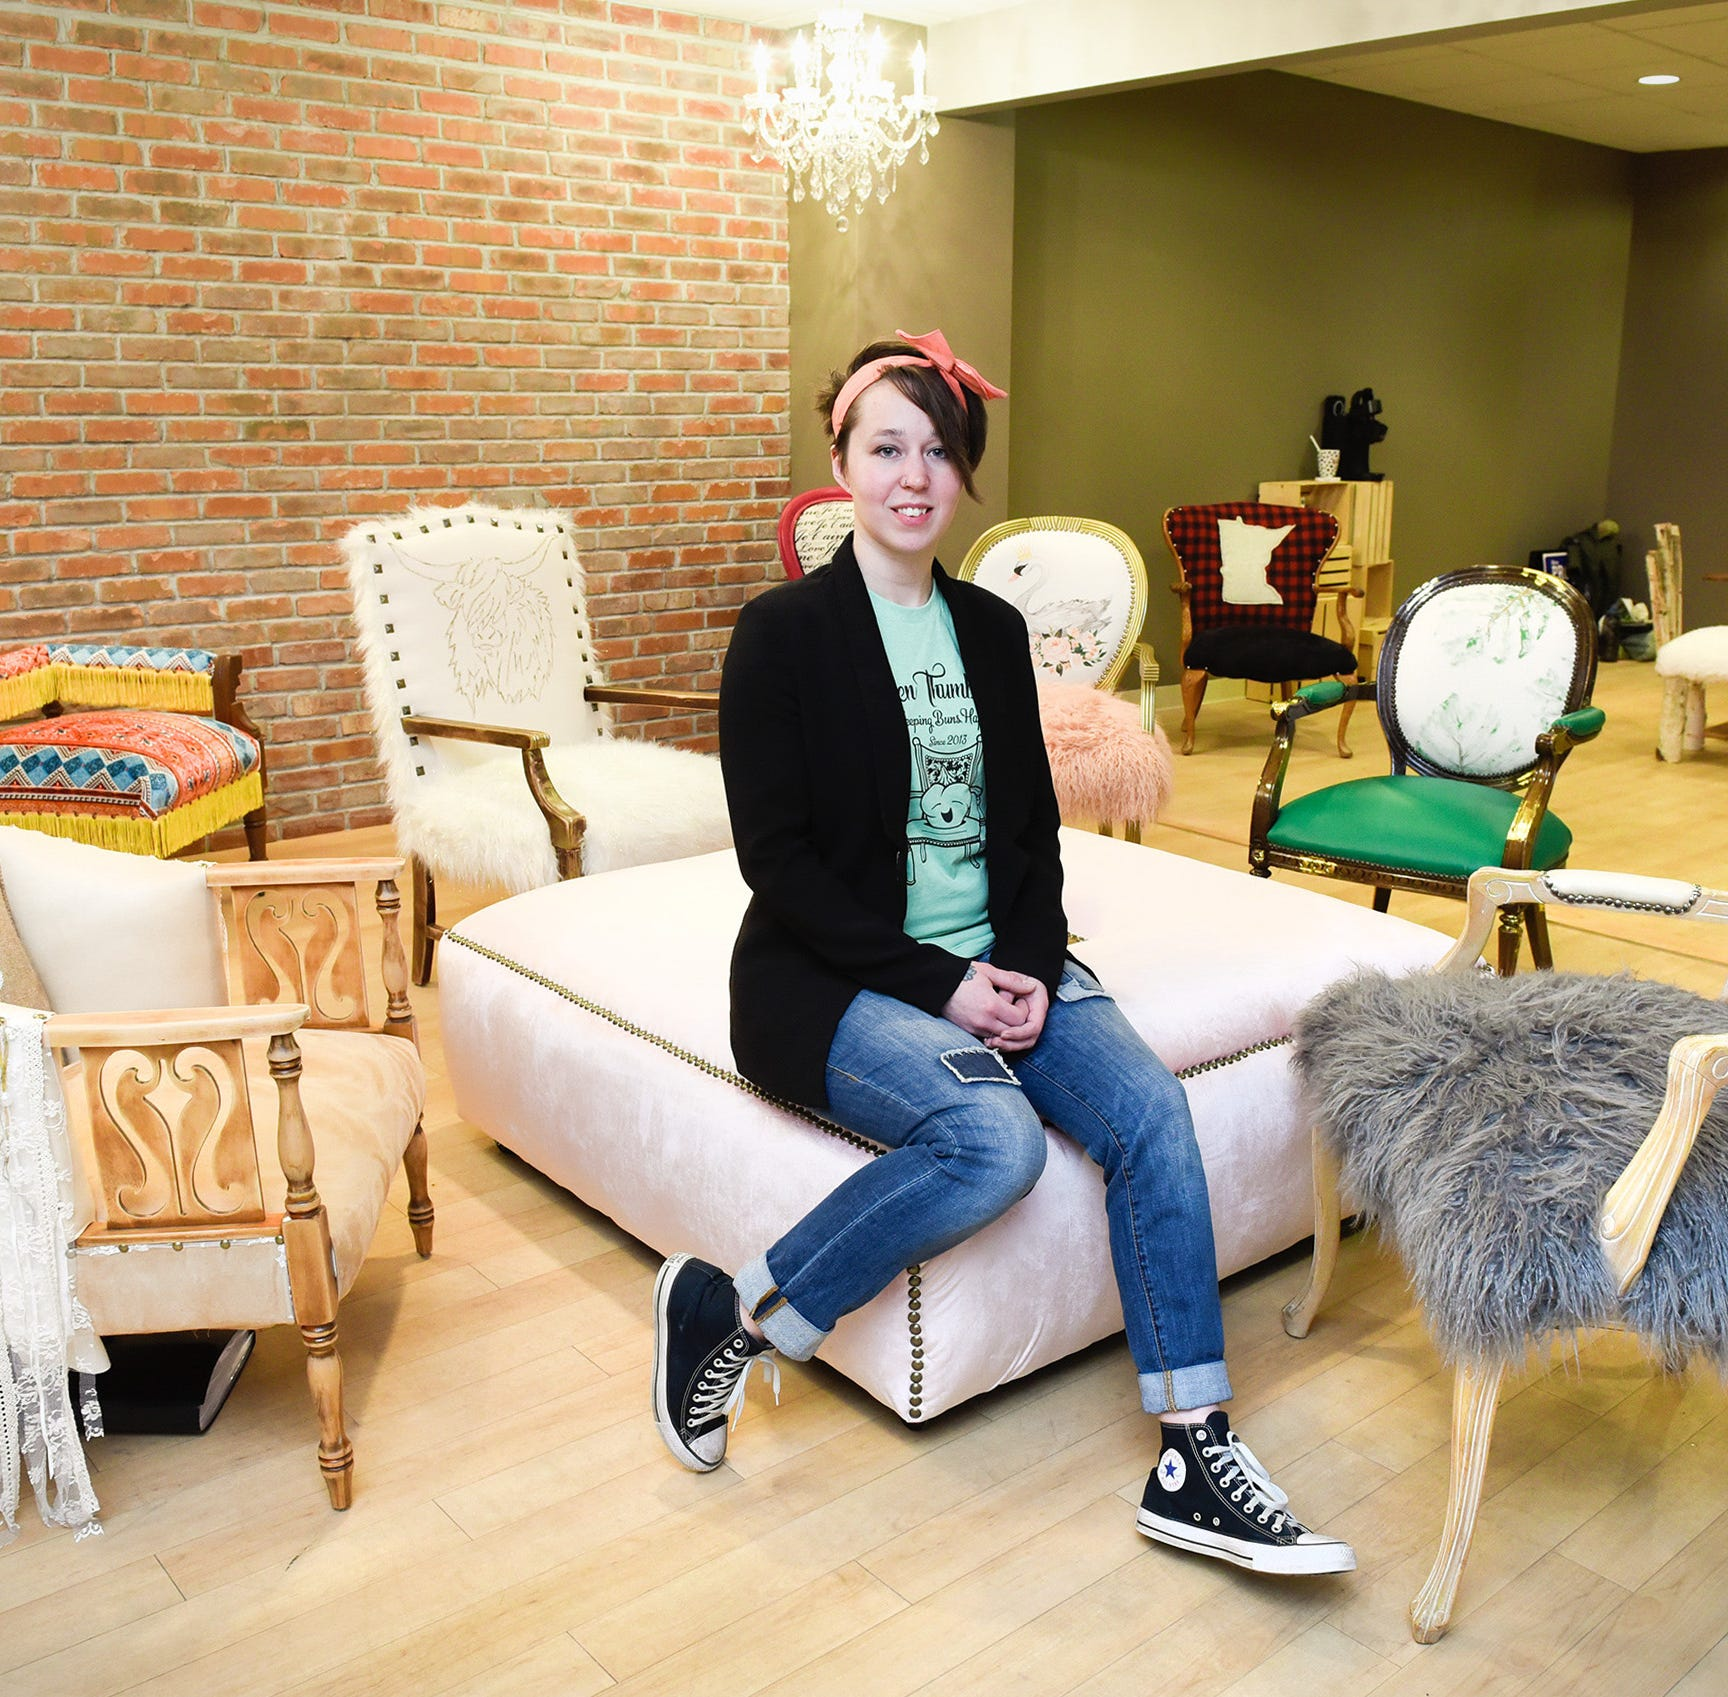 Grab a seat: Green Thumb Etc. offers creative chairs and custom furniture reupholstery